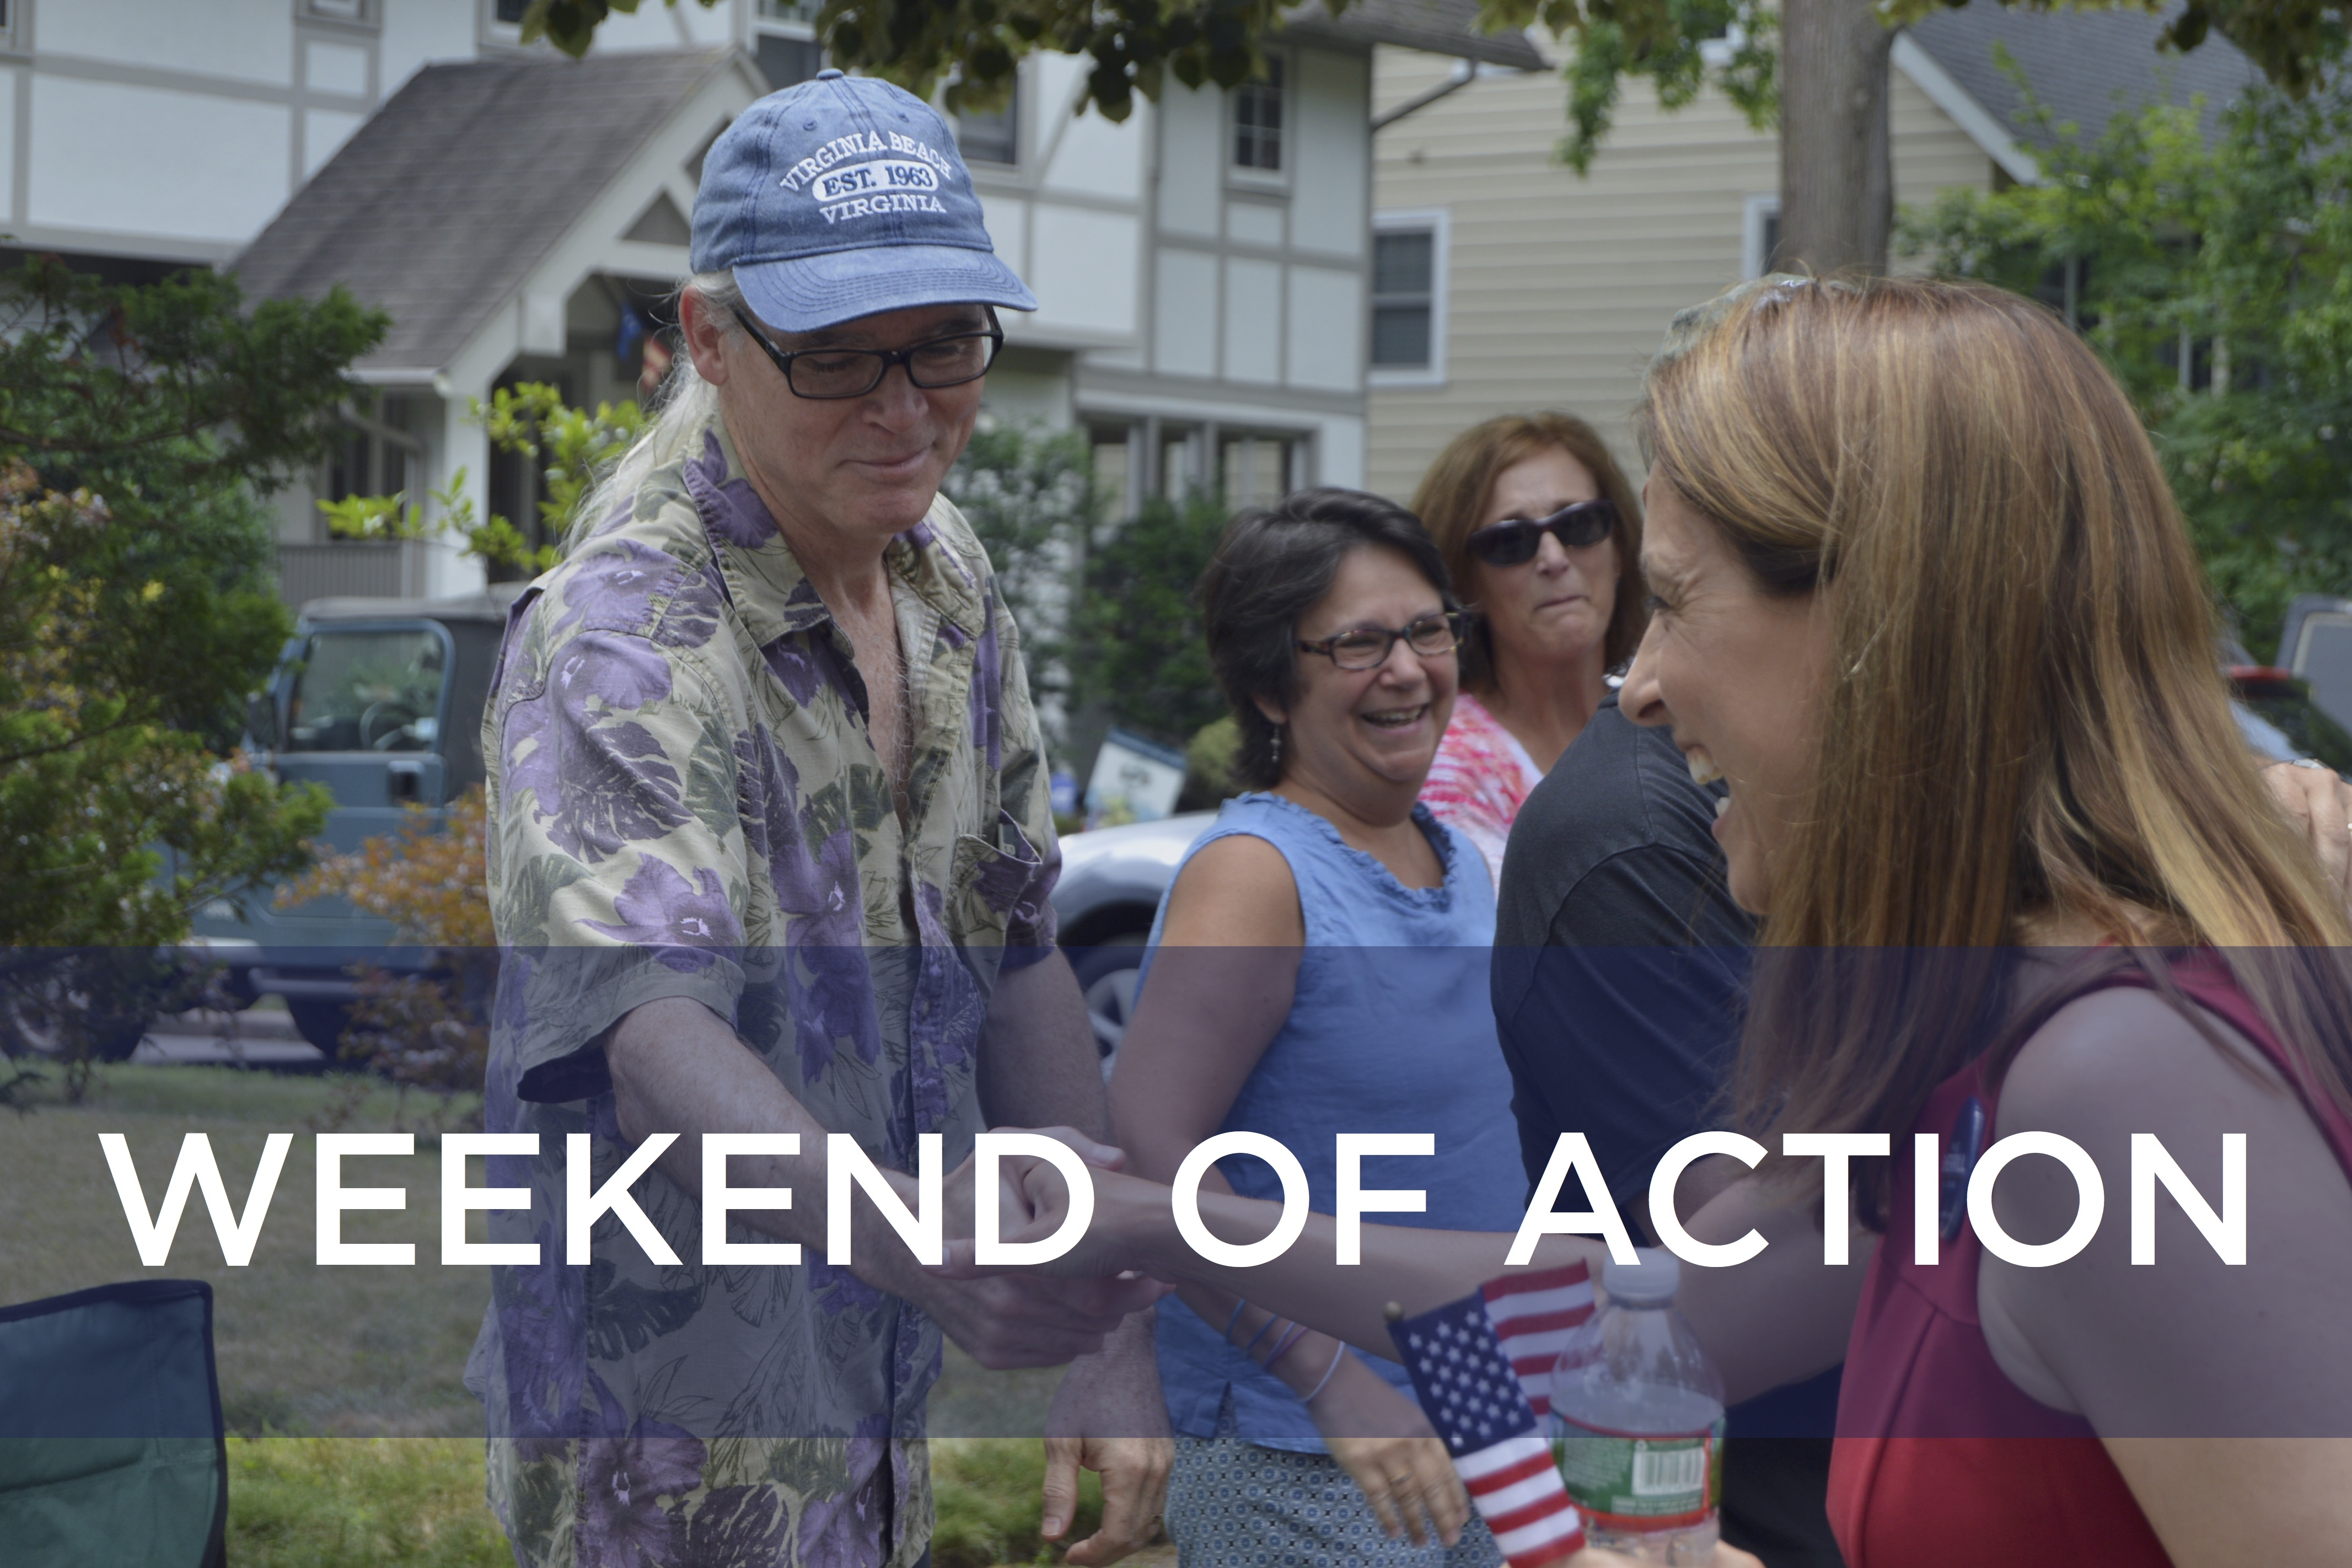 WEEKEND OF ACTION in Parsippany